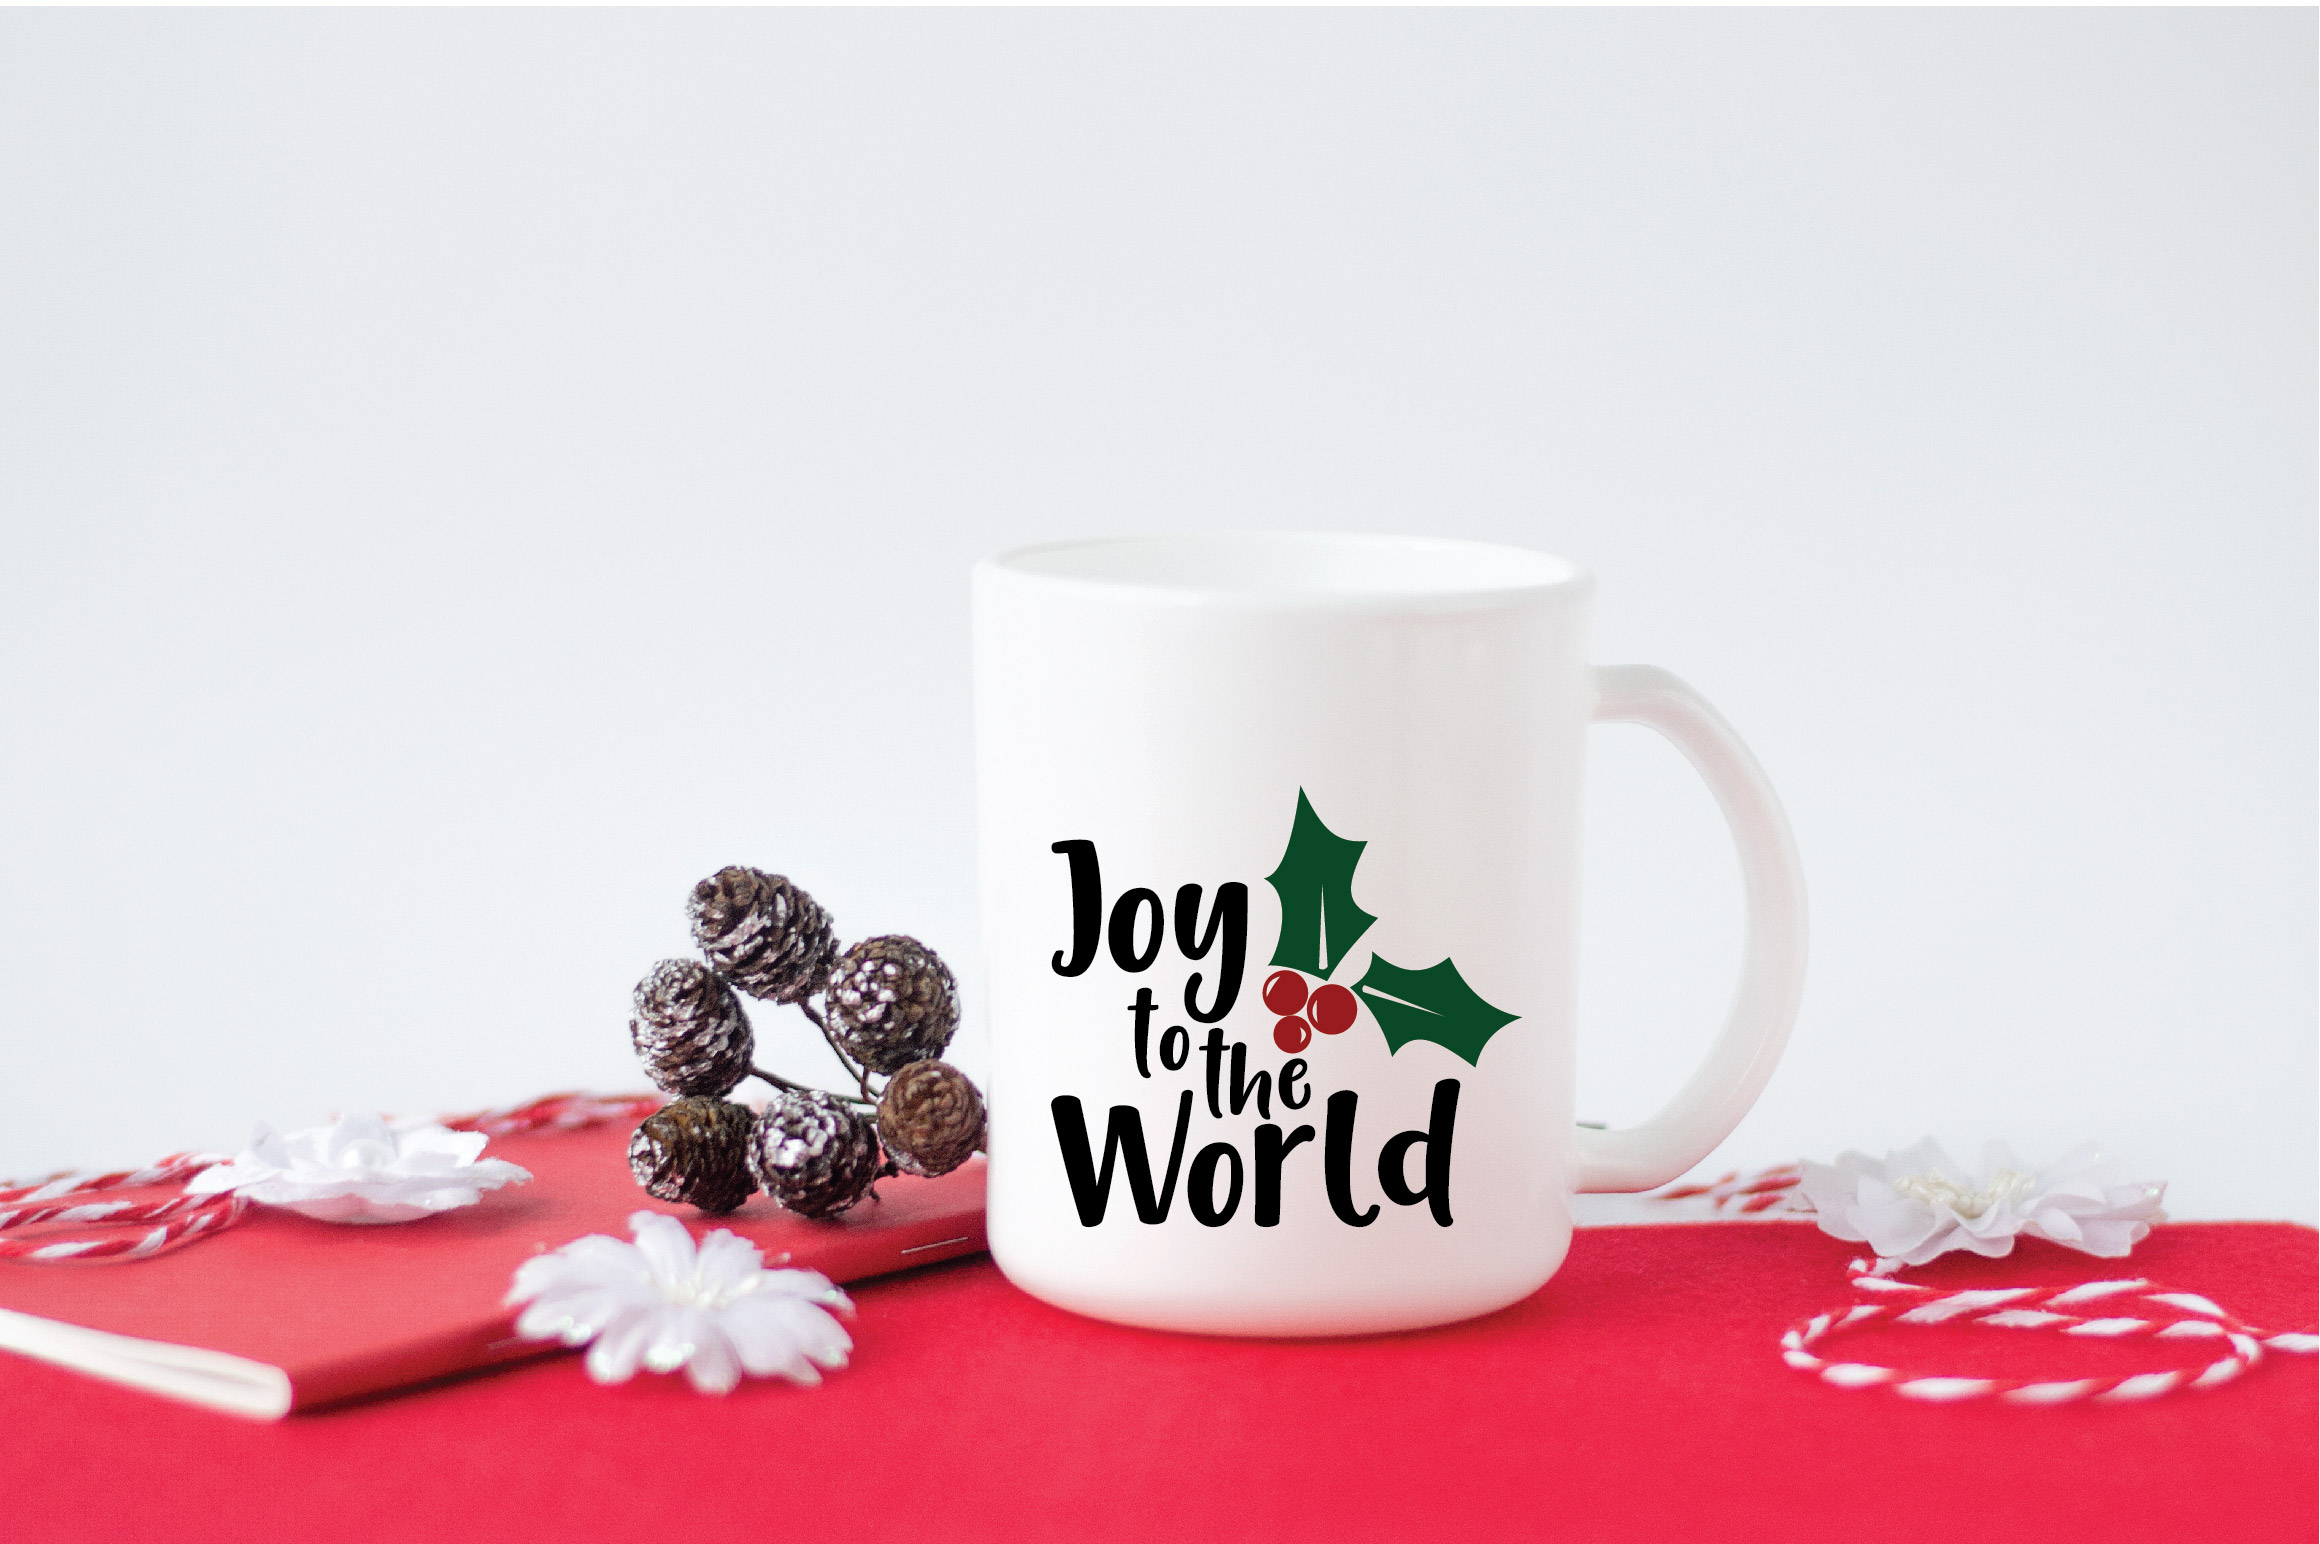 Joy to the World SVG Cut File - Christmas SVG example image 4